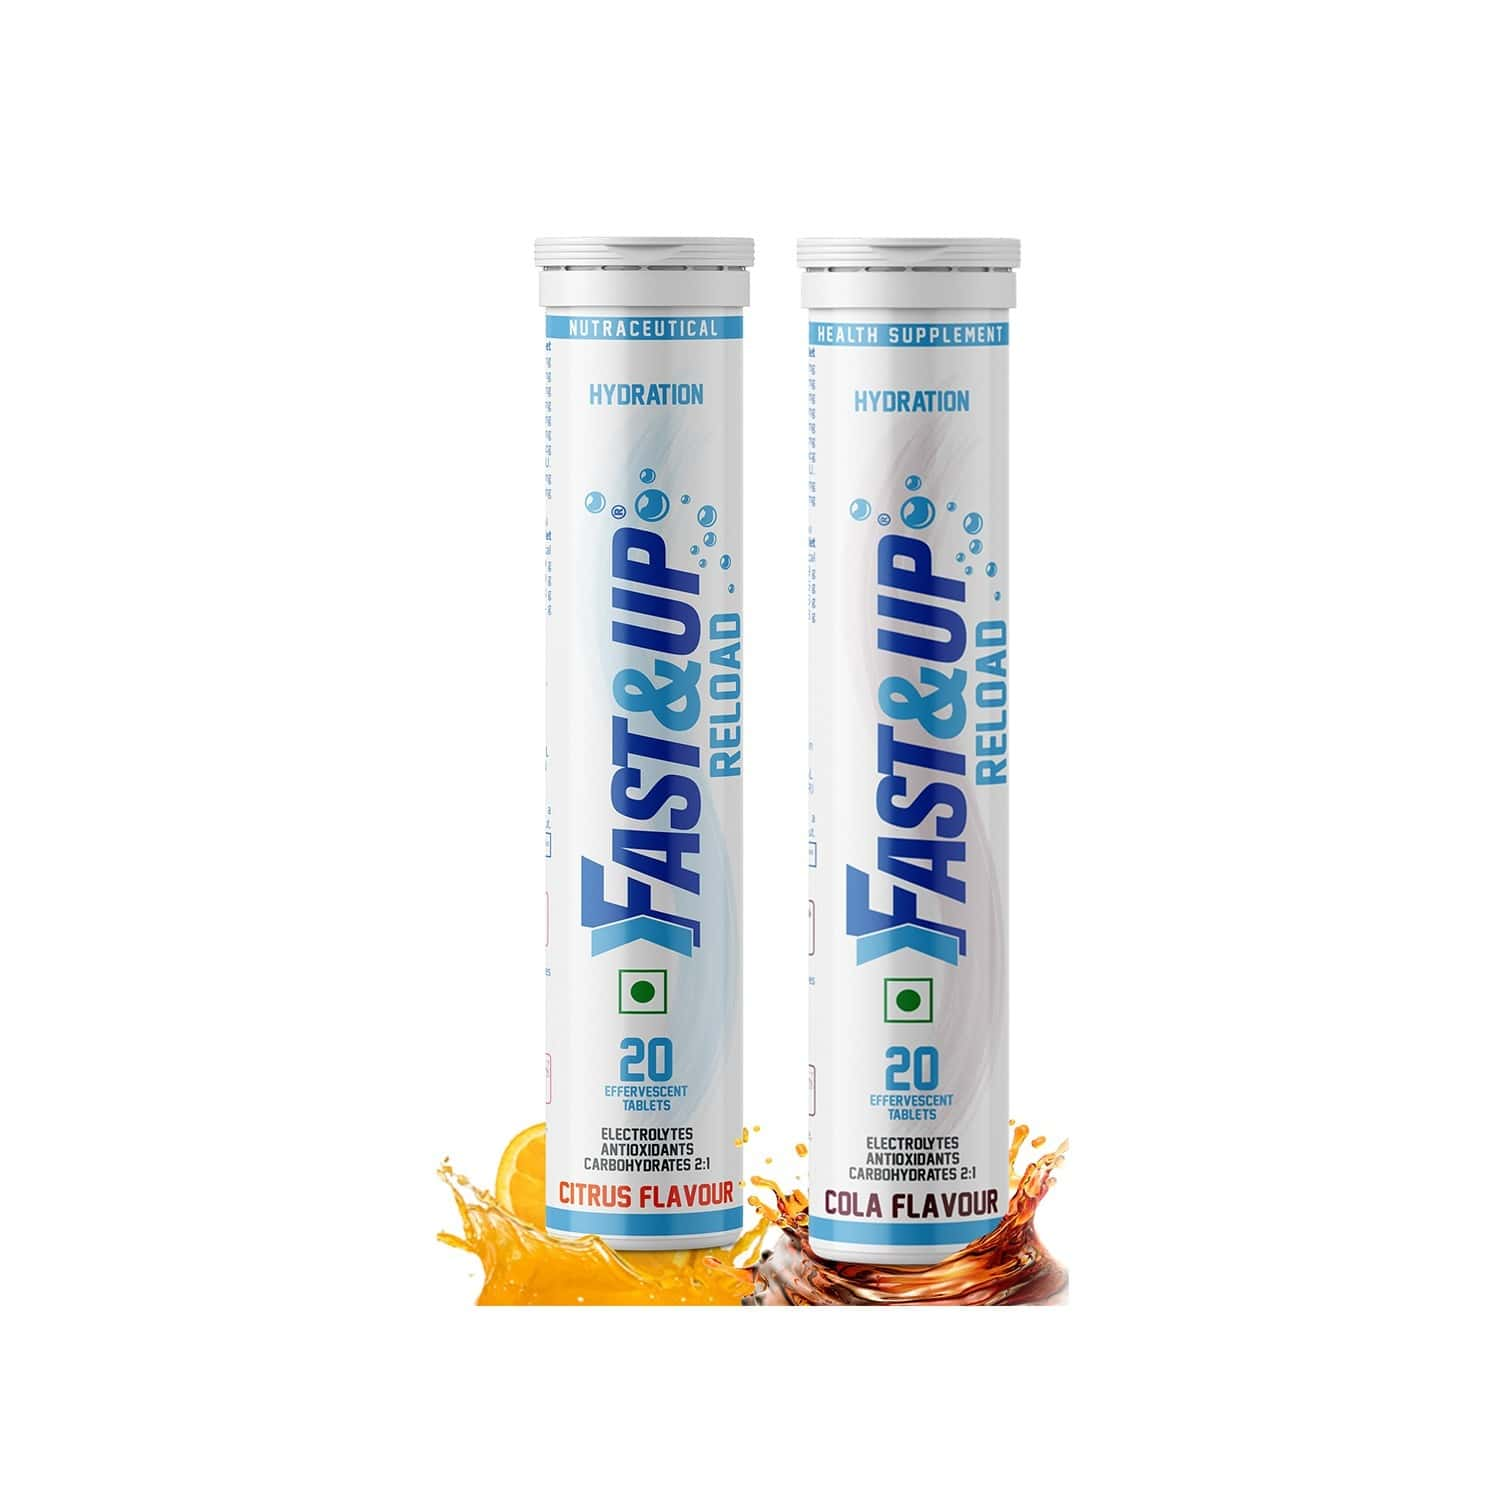 Fast&up Reload Combo - 2x20 Effervescent Tablets - Citrus And Cola Flavour